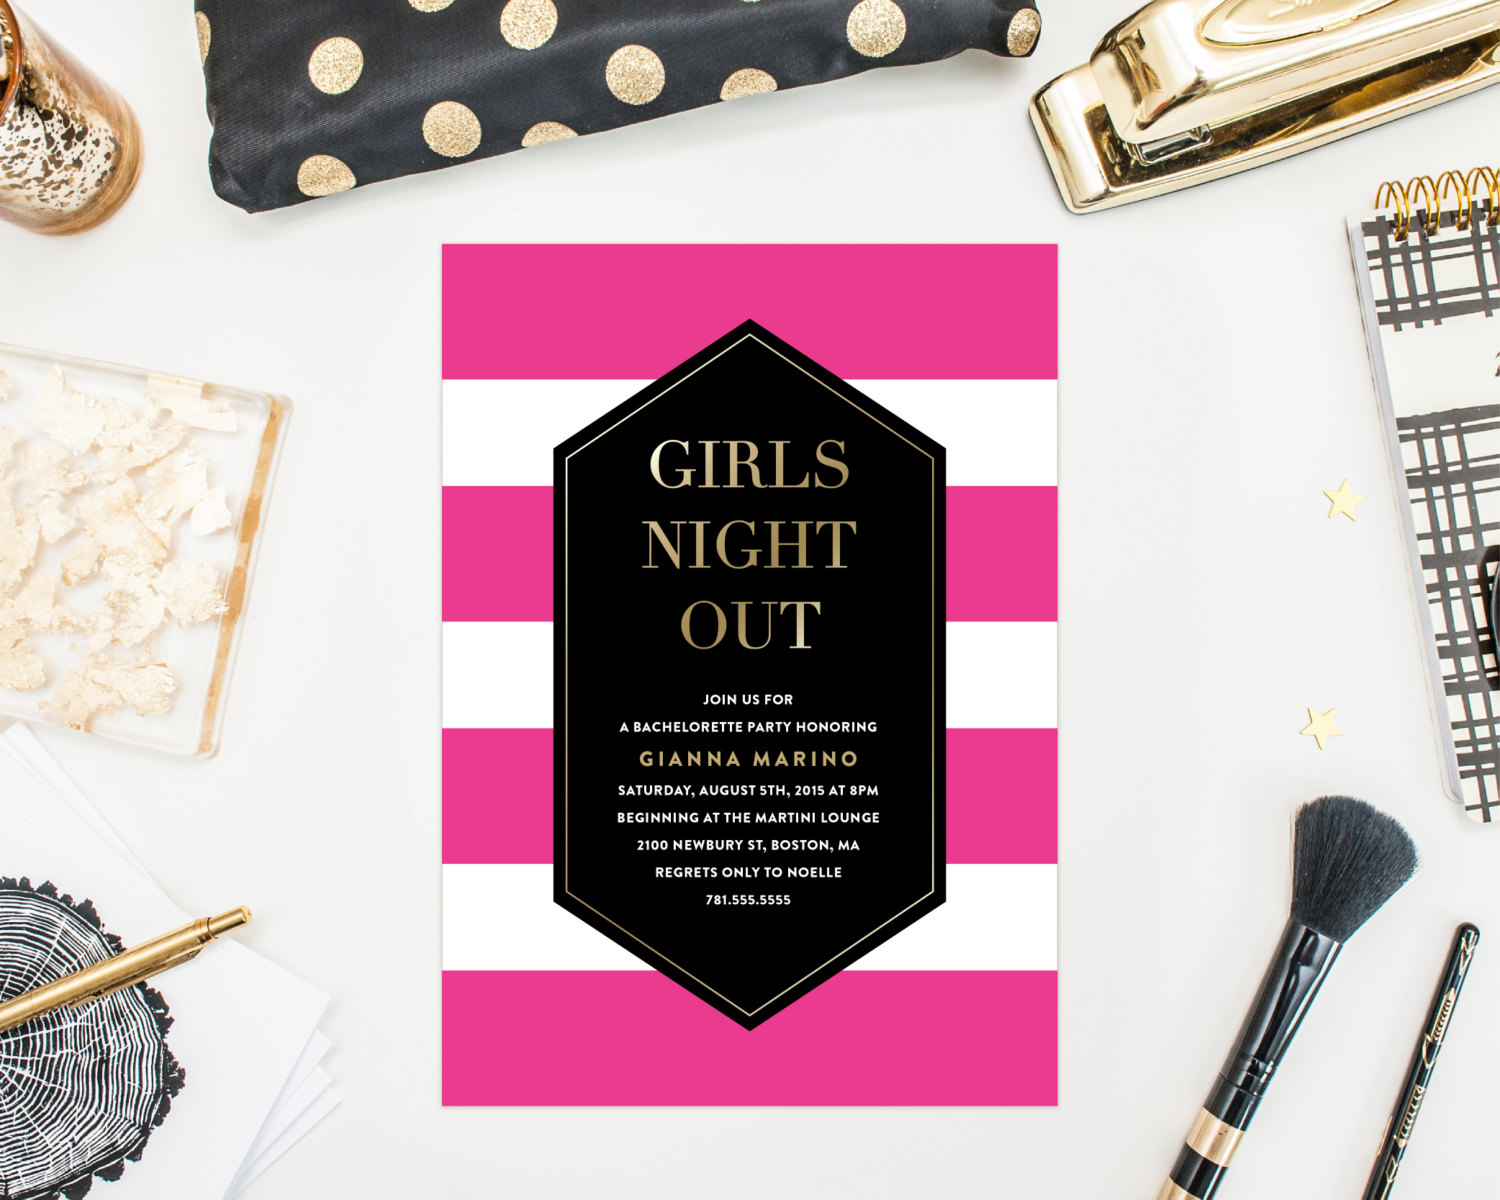 girls night out bachelorette party invitation by fine and dandy paperie | fun bachelorette party ideas | http://emmalinebride.com/planning/fun-bachelorette-party-ideas/